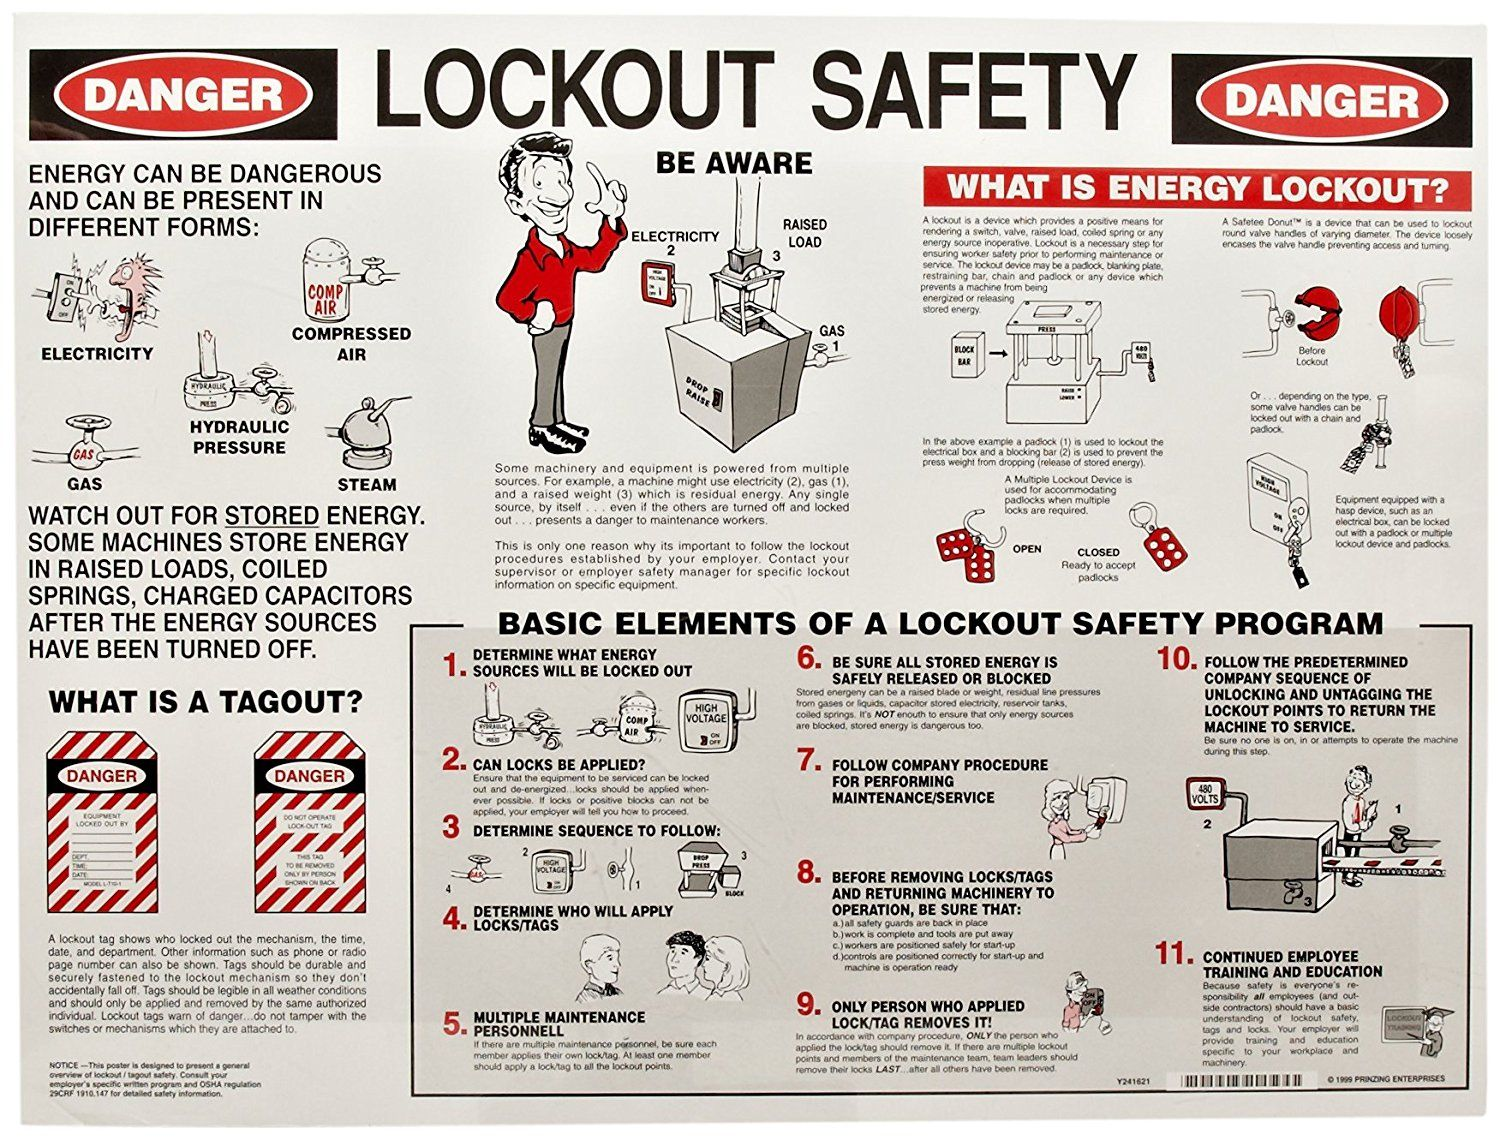 Brady Laminated Lockout Safety Poster Industrial Lockout